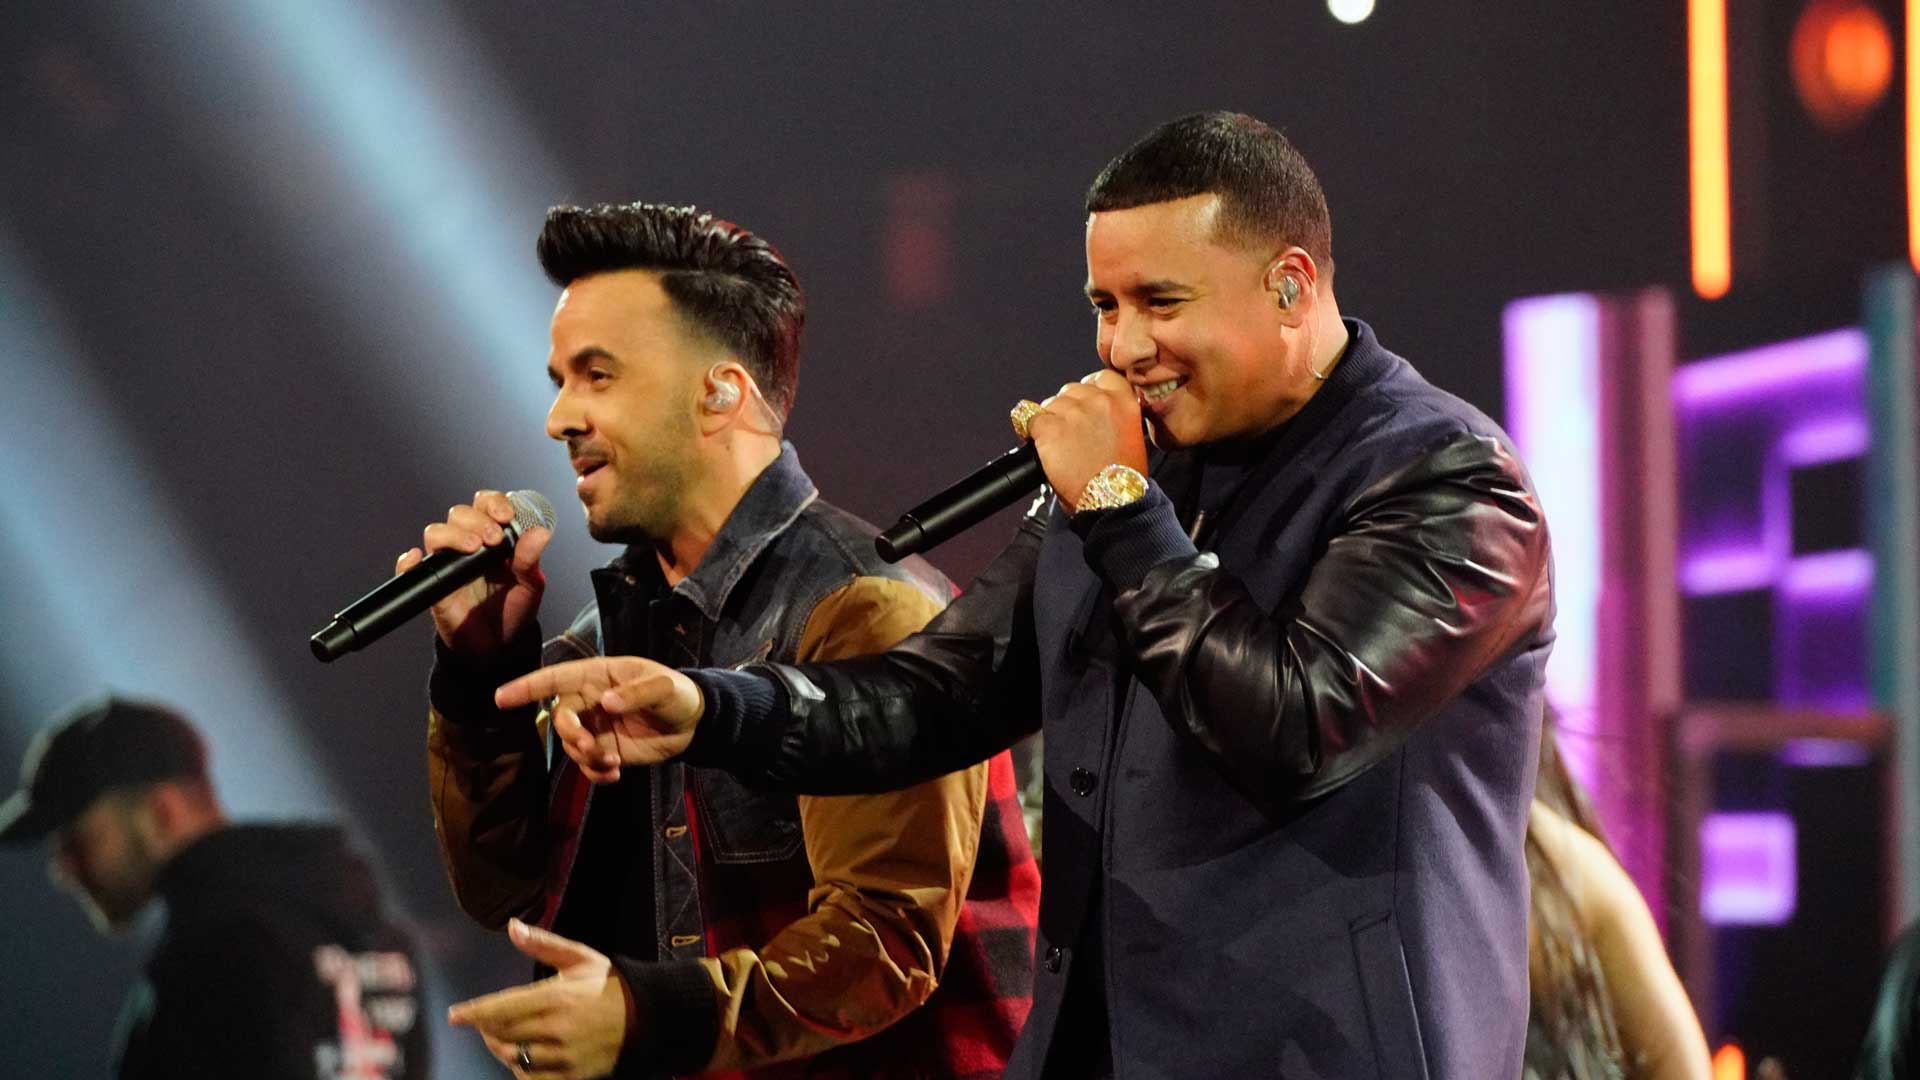 Luis Fonsi and Daddy Yankee turn up the heat while rehearsing for the 60th Annual GRAMMY Awards.